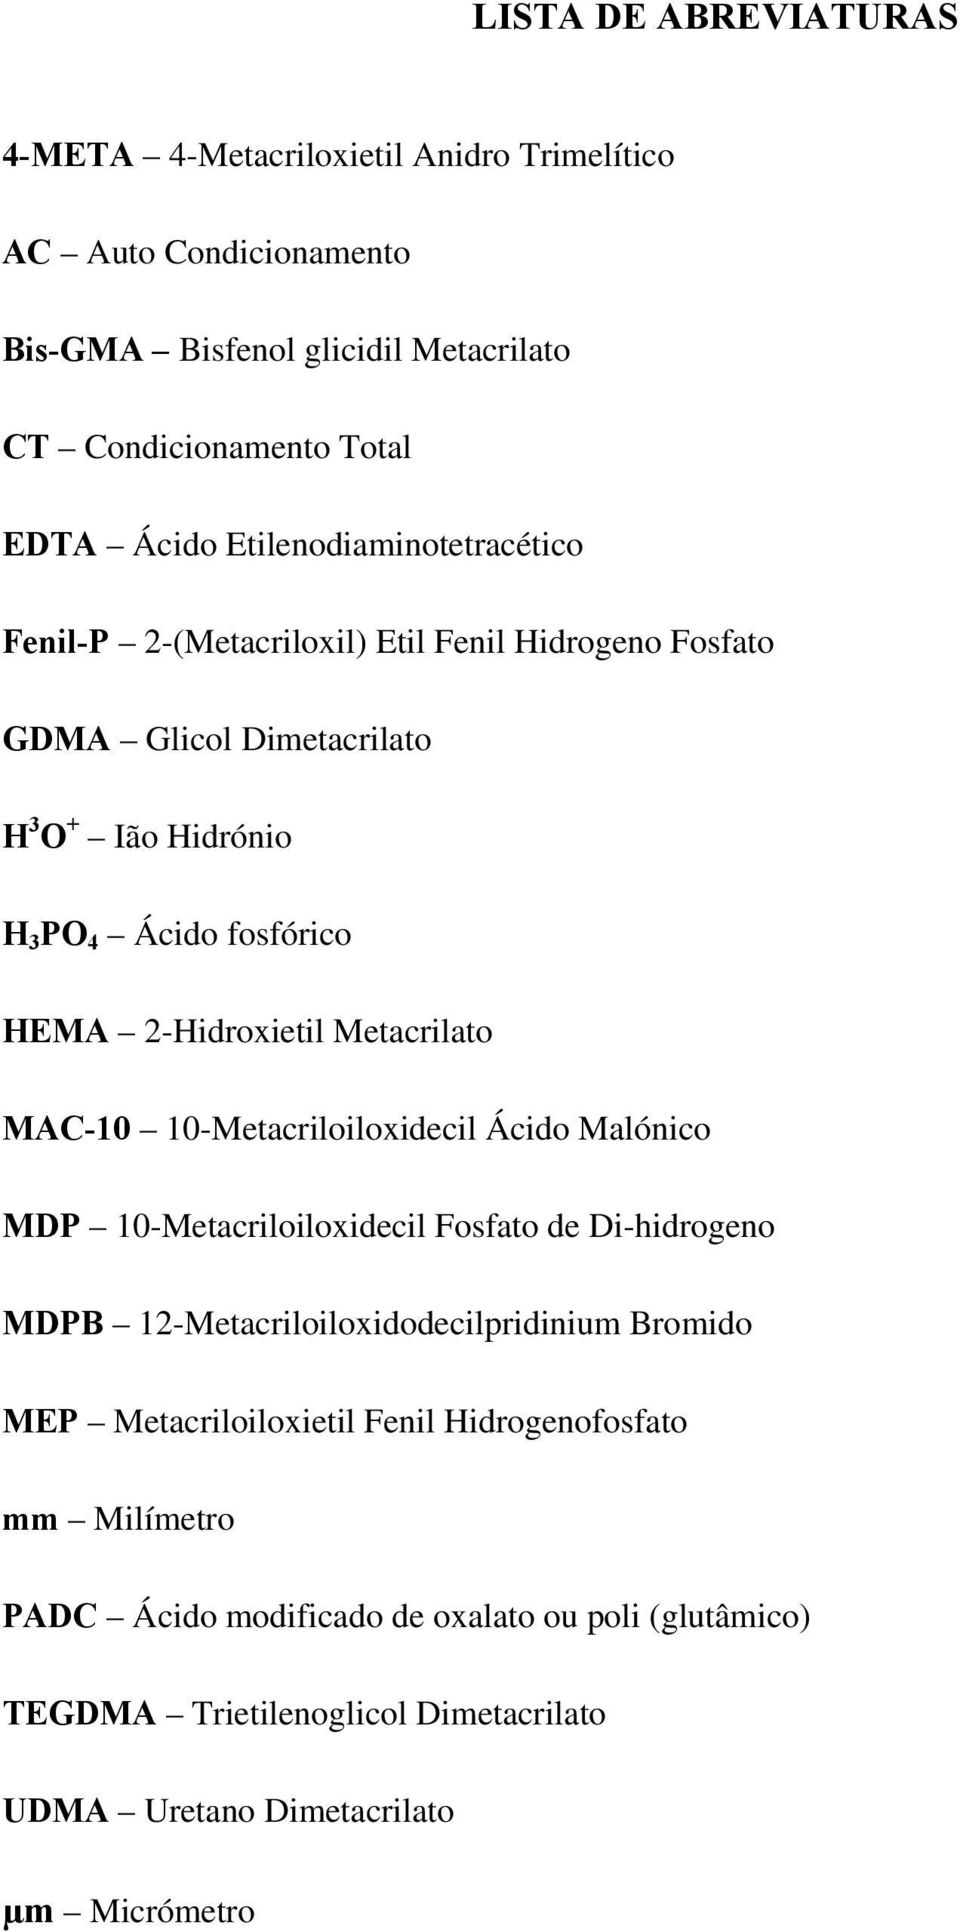 2-Hidroxietil Metacrilato MAC-10 10-Metacriloiloxidecil Ácido Malónico MDP 10-Metacriloiloxidecil Fosfato de Di-hidrogeno MDPB 12-Metacriloiloxidodecilpridinium Bromido